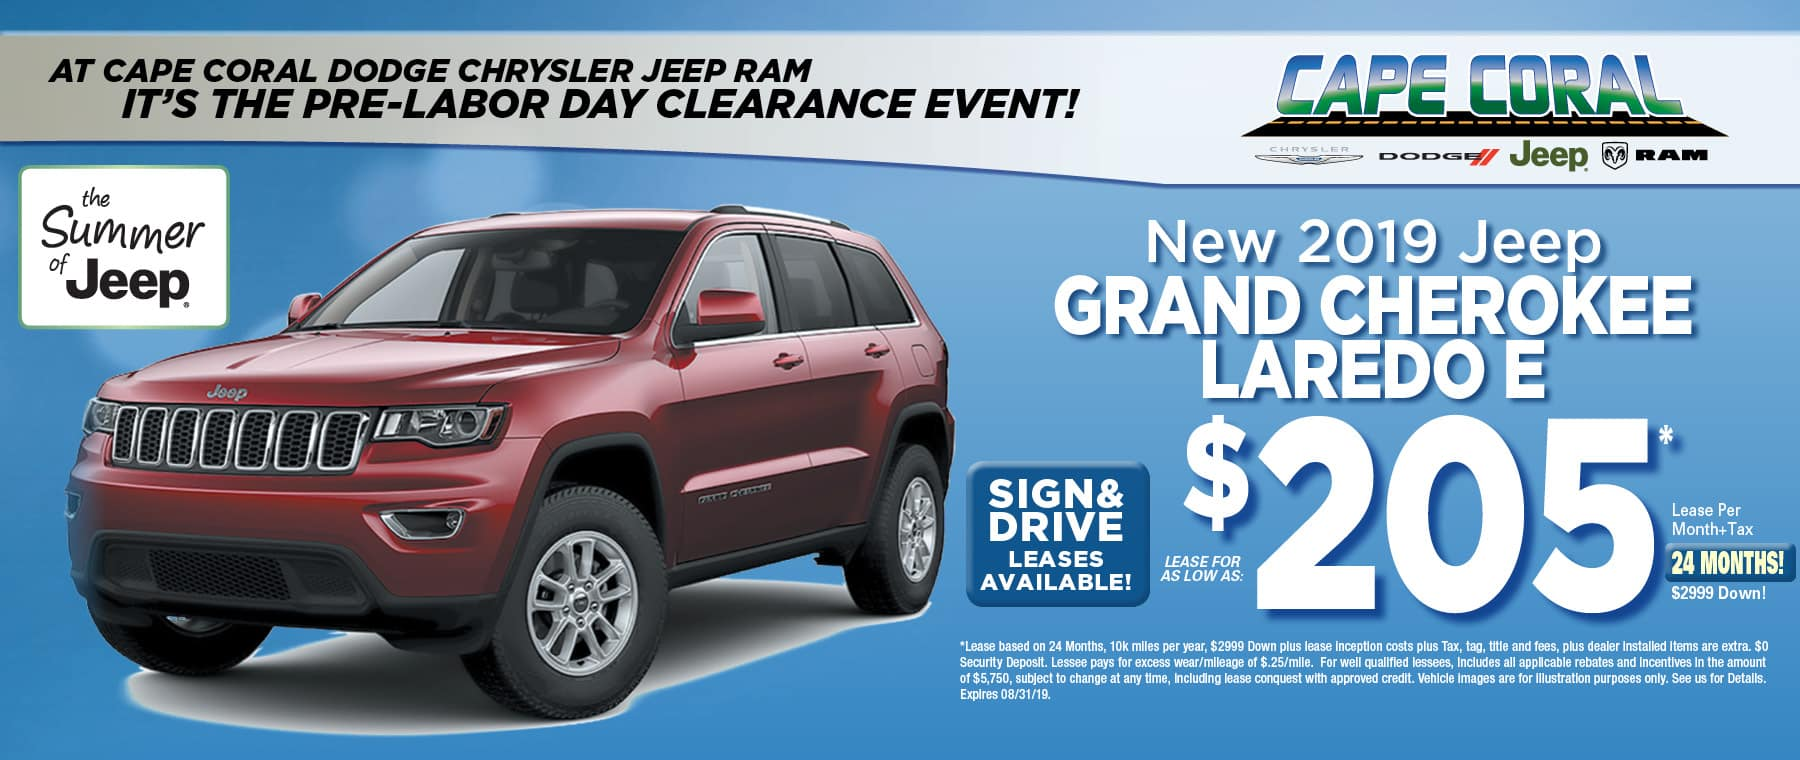 New 2019 Jeep Grand Cherokees!